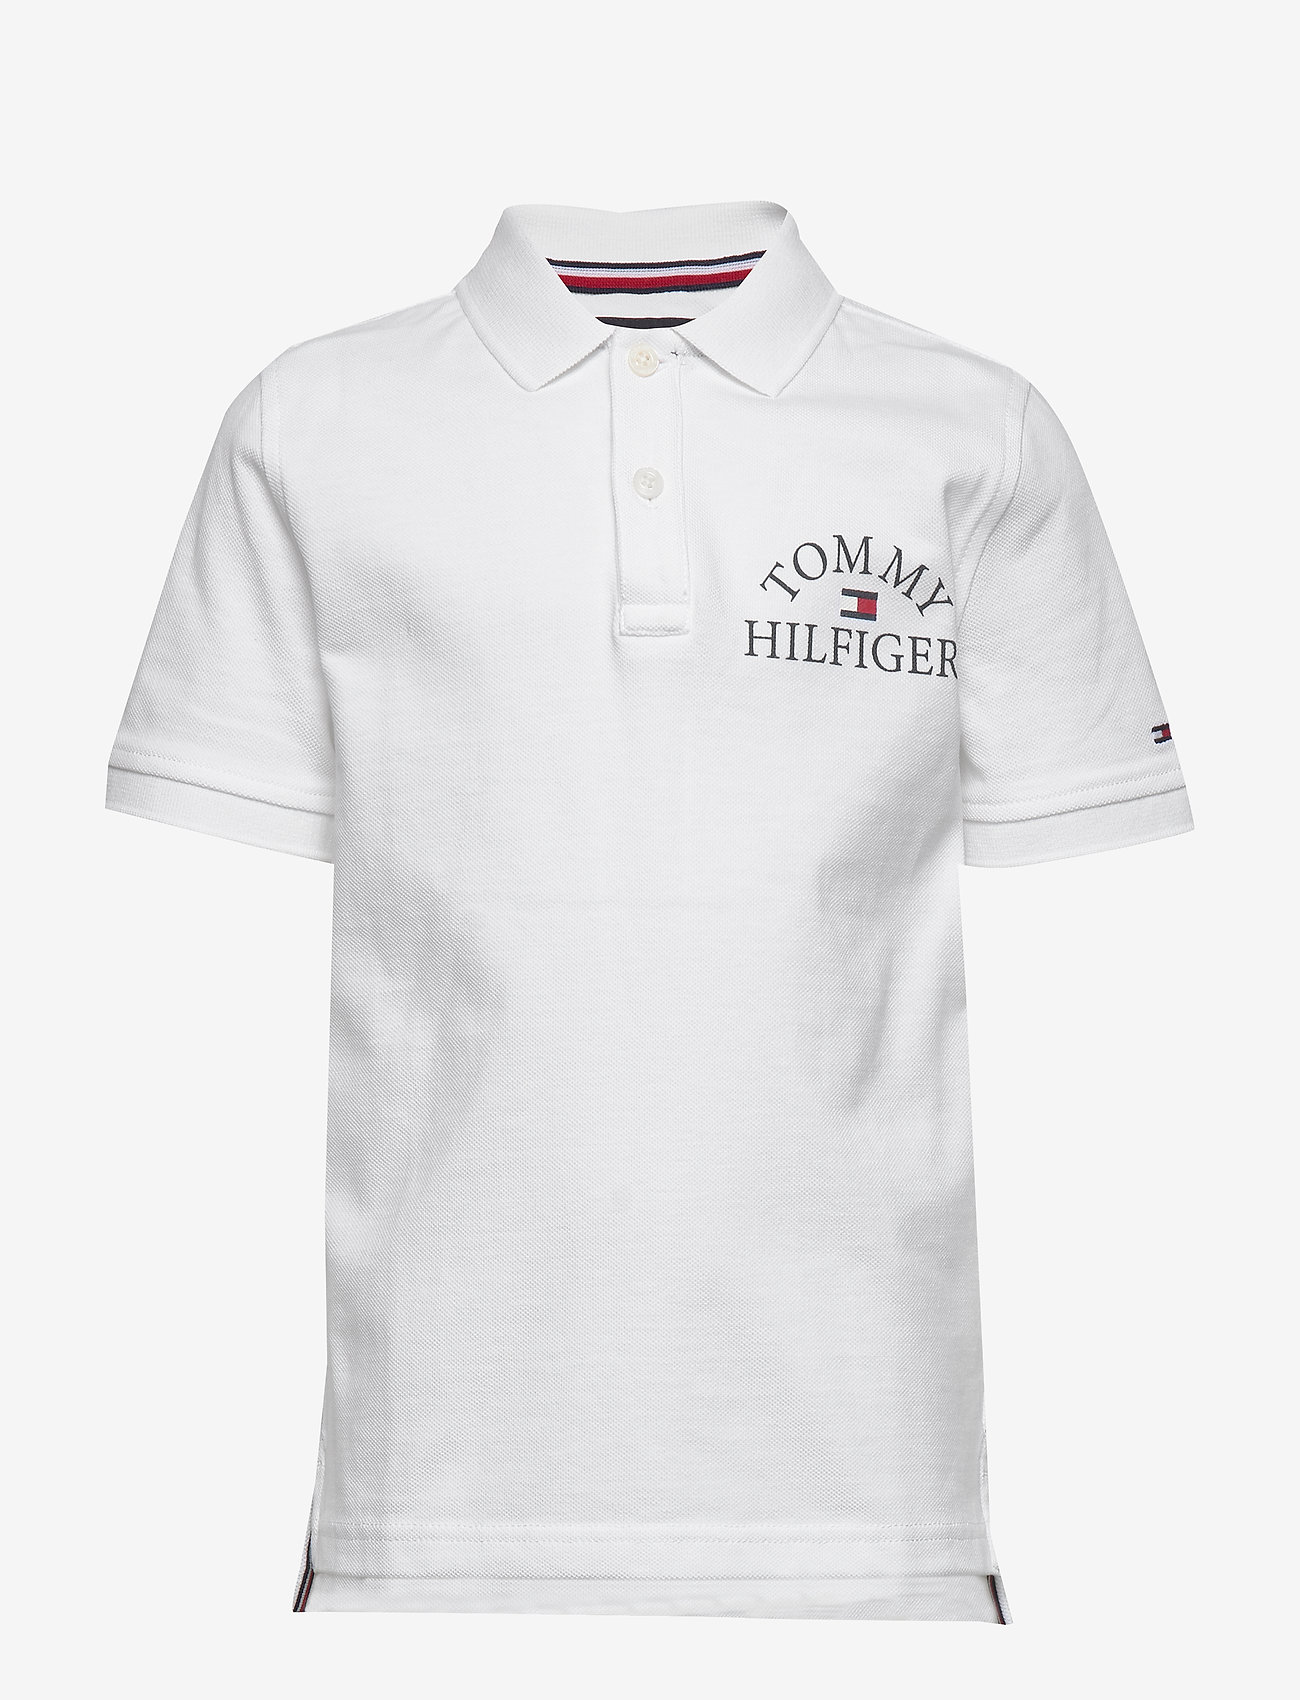 Tommy Hilfiger - ESSENTIAL LOGO CHEST POLO S/S - polo shirts - white 658-170